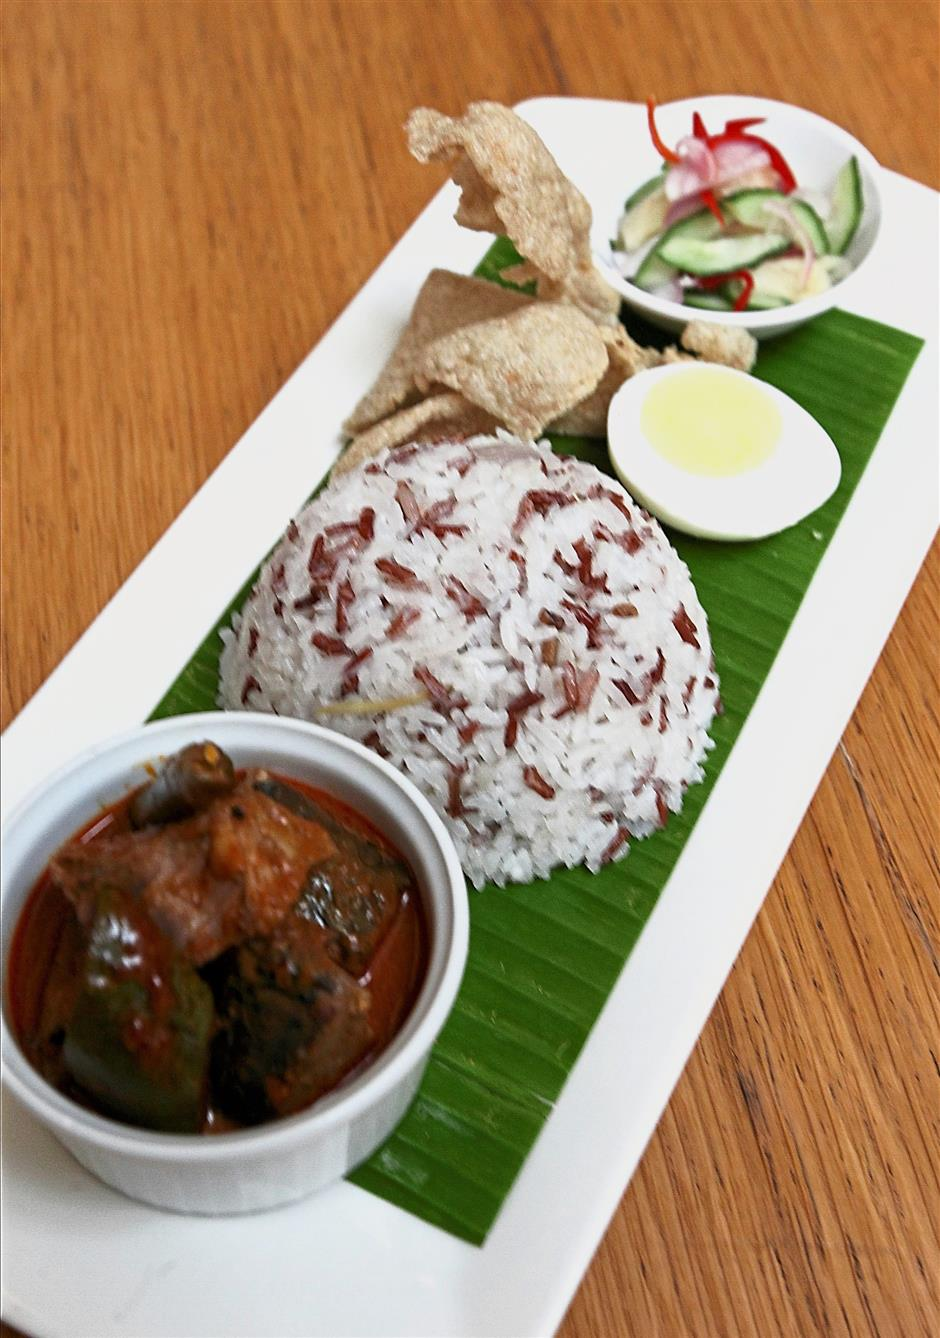 Nasi dagang served with chicken curry, hard boiled egg and fish crackers.